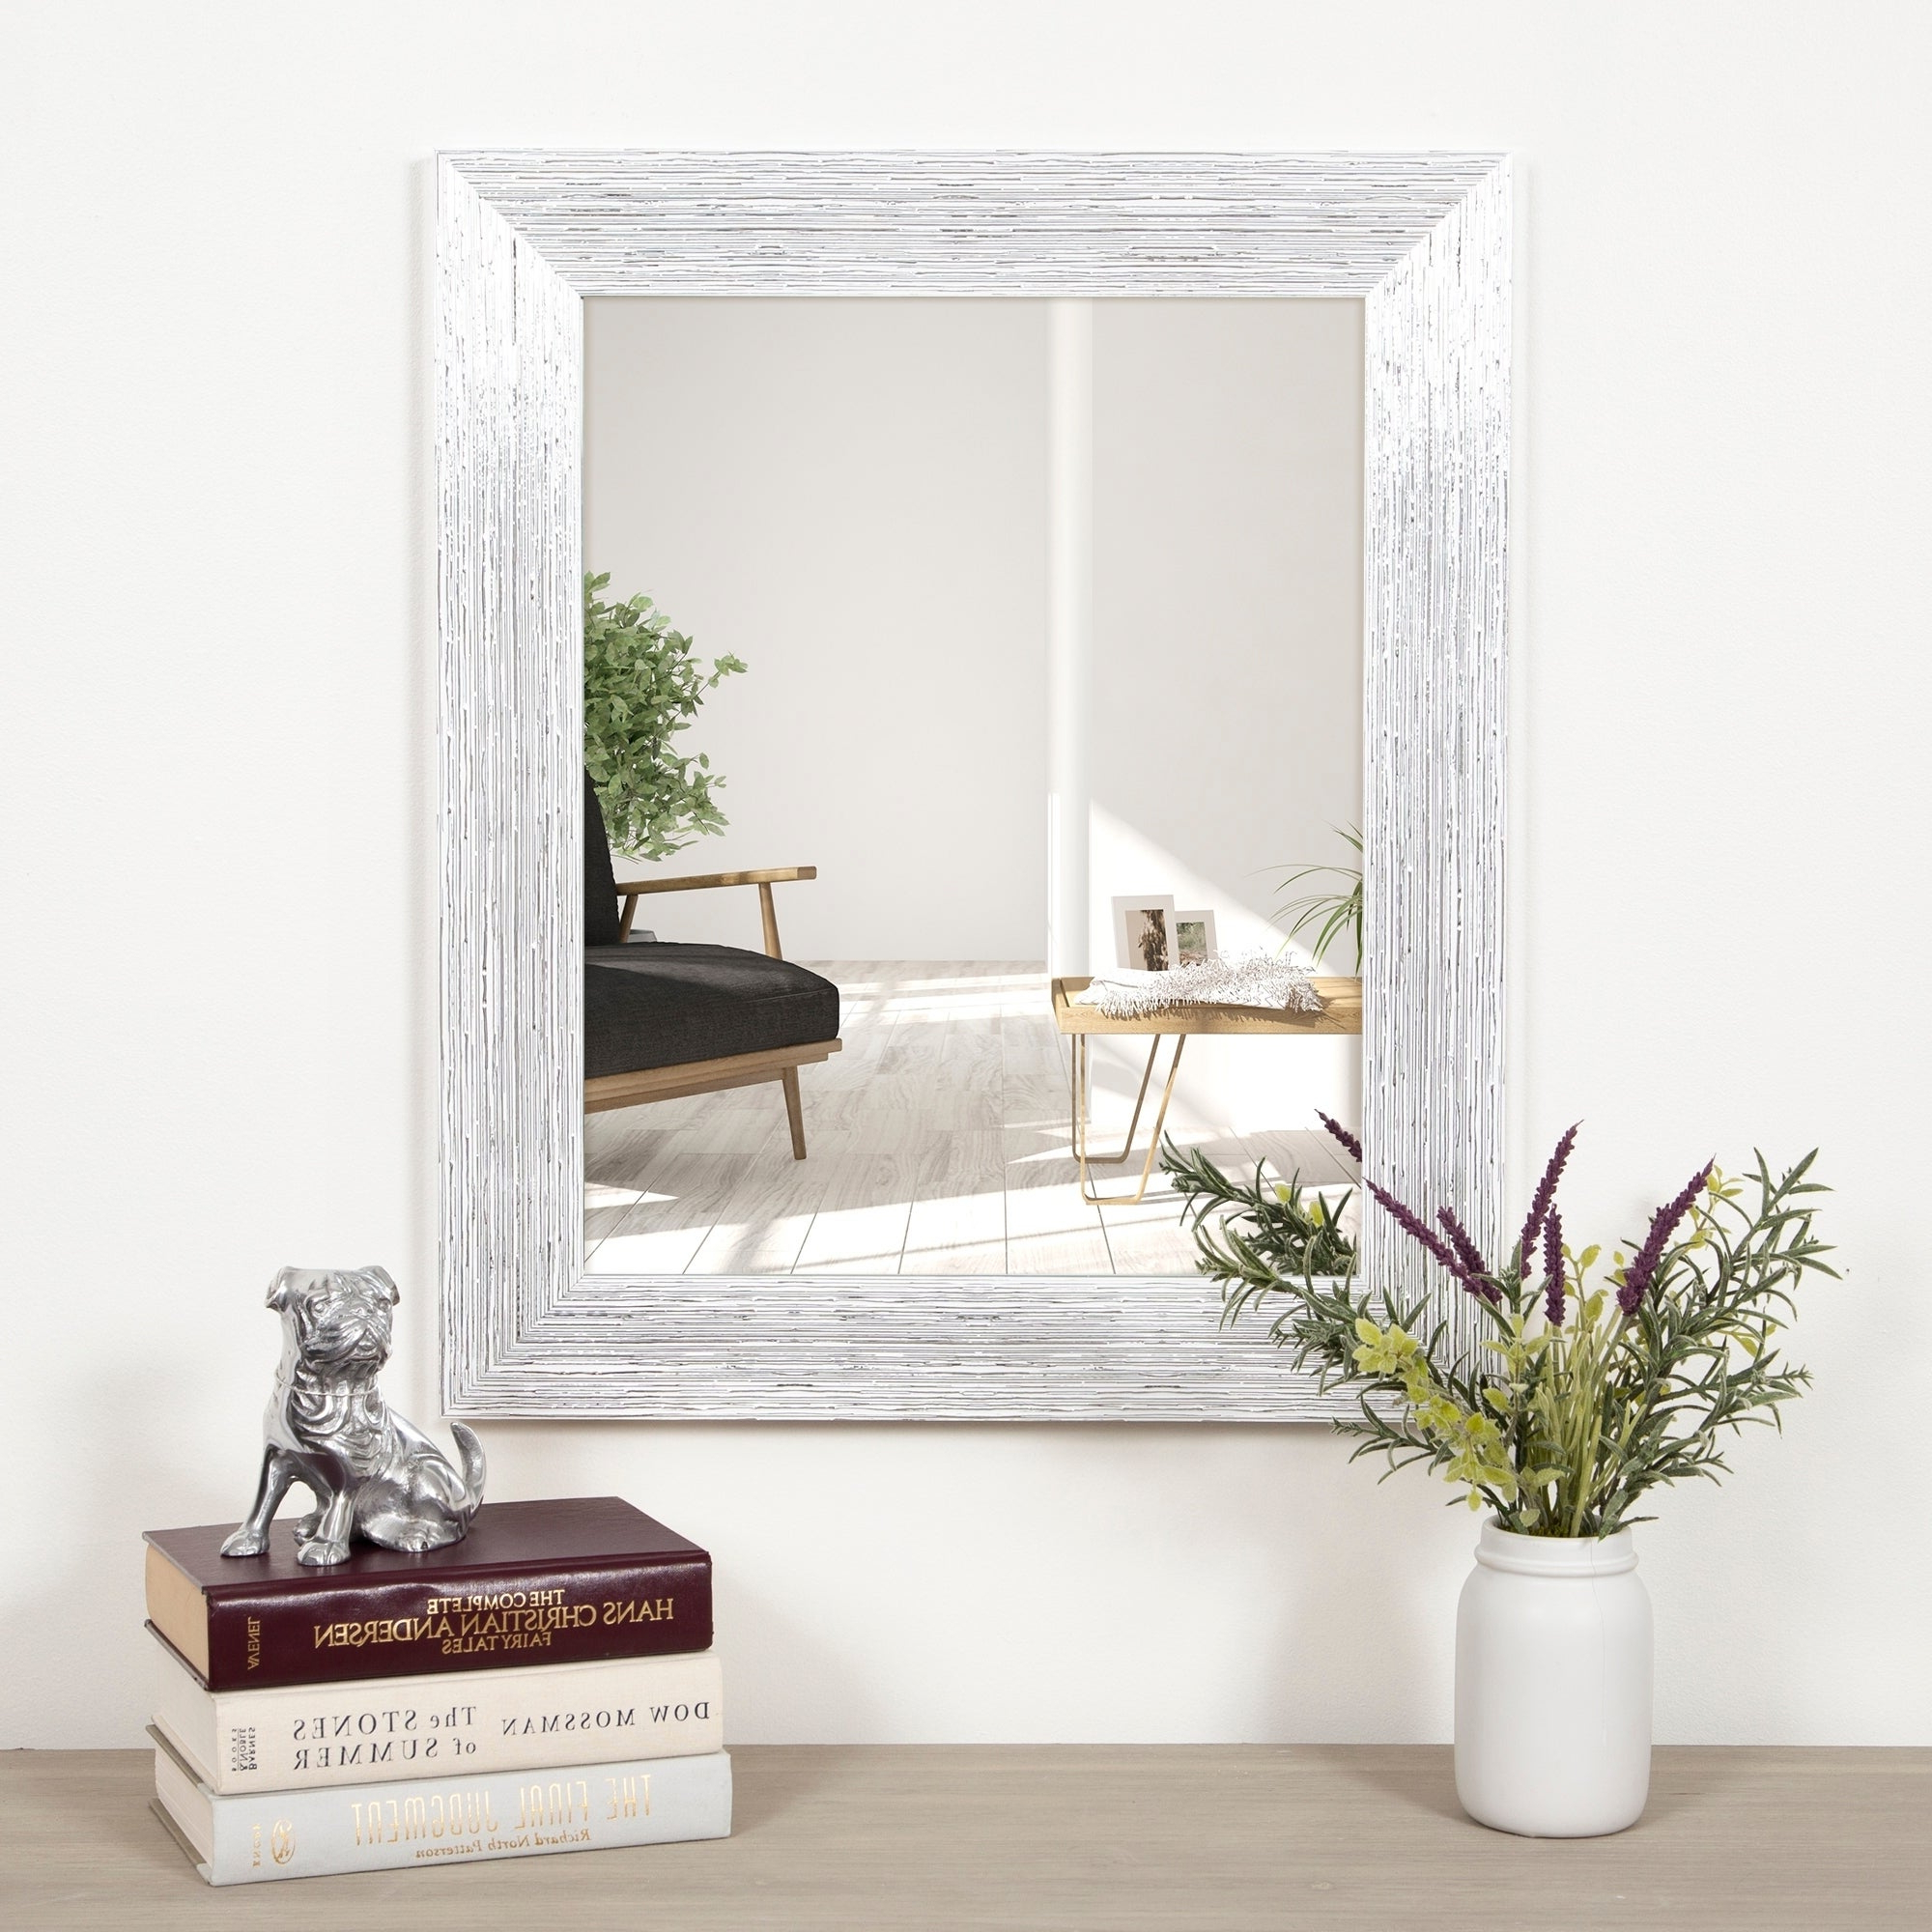 Gallery Solutions Textured White And Silver Framed Accent Wall Mirror Regarding Most Current Accent Wall Mirrors (View 10 of 20)